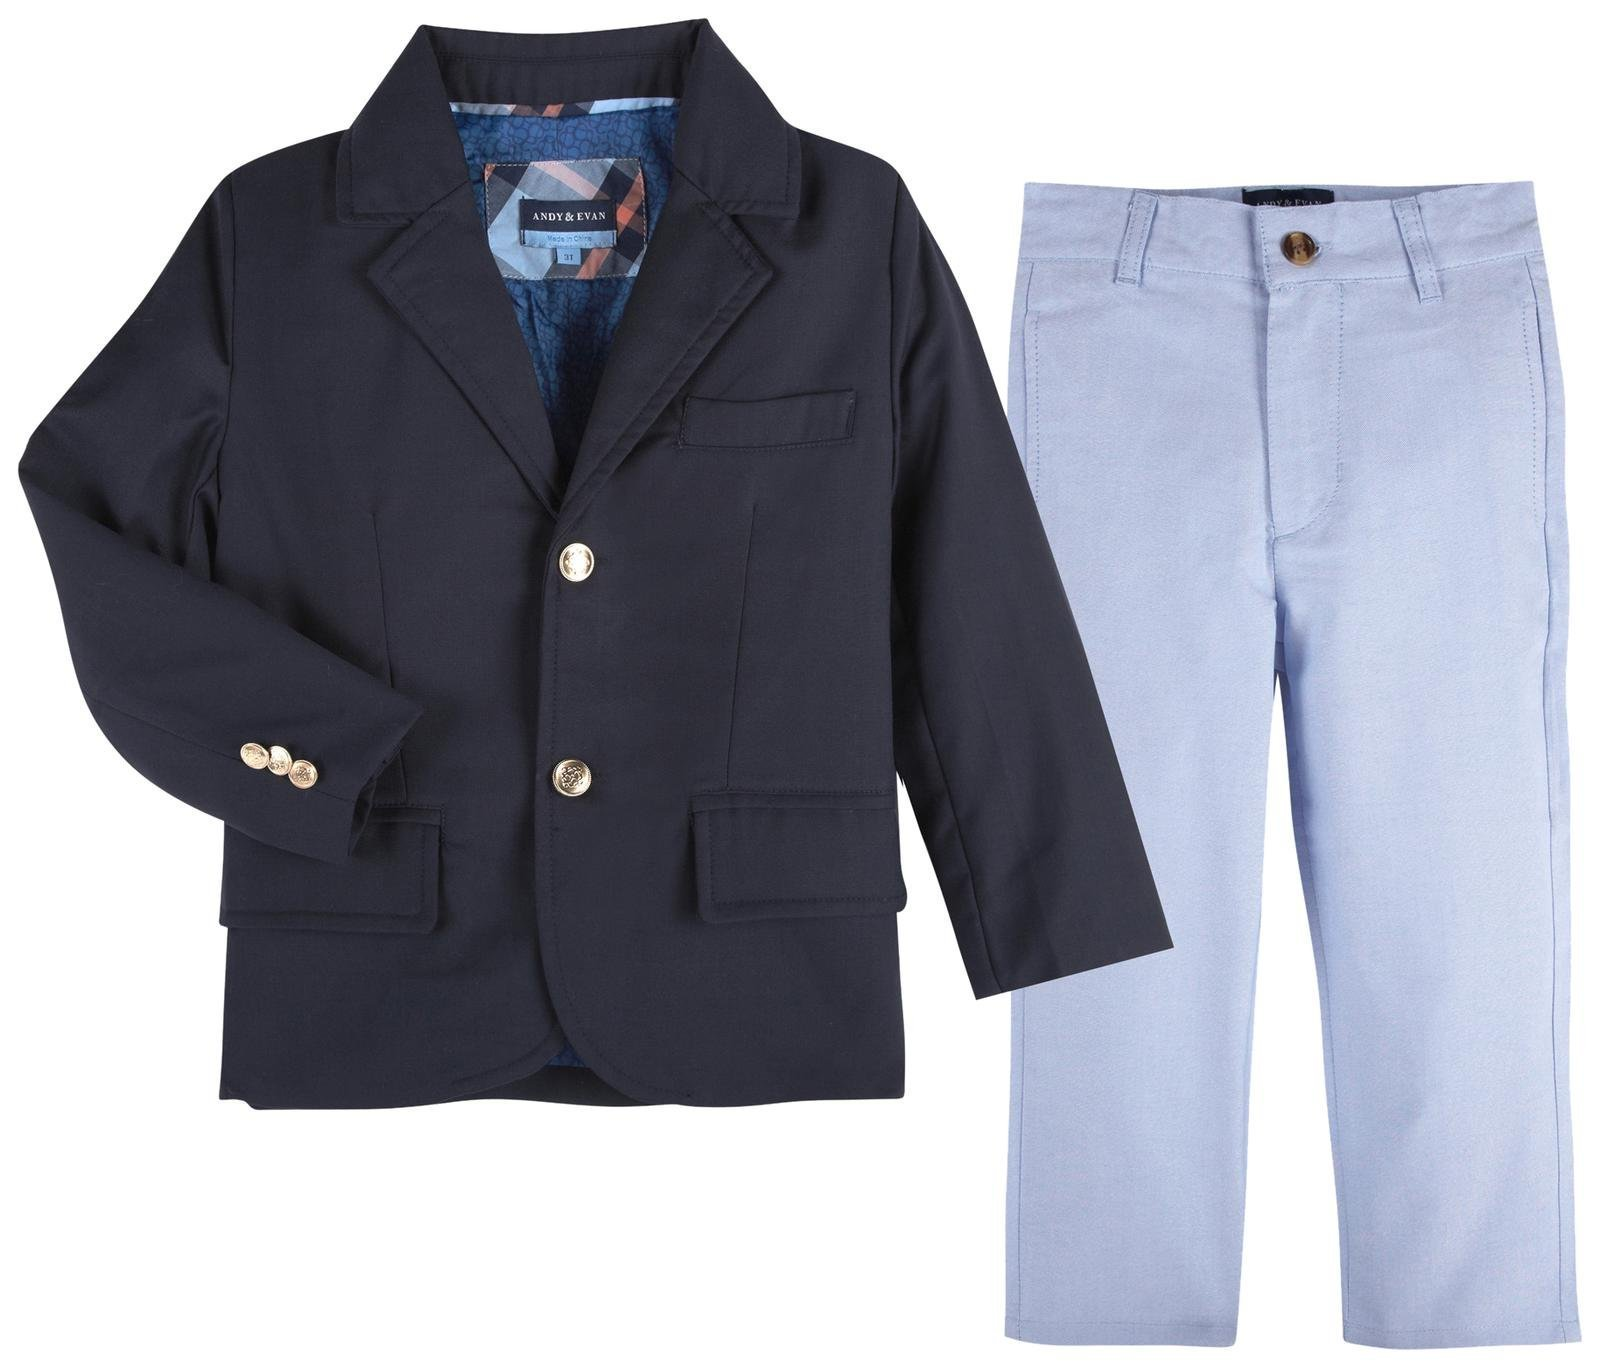 Andy & Evan Boys' Twill Blazer and Oxford Pant Set-Toddler, Navy, 5Y by Andy & Evan